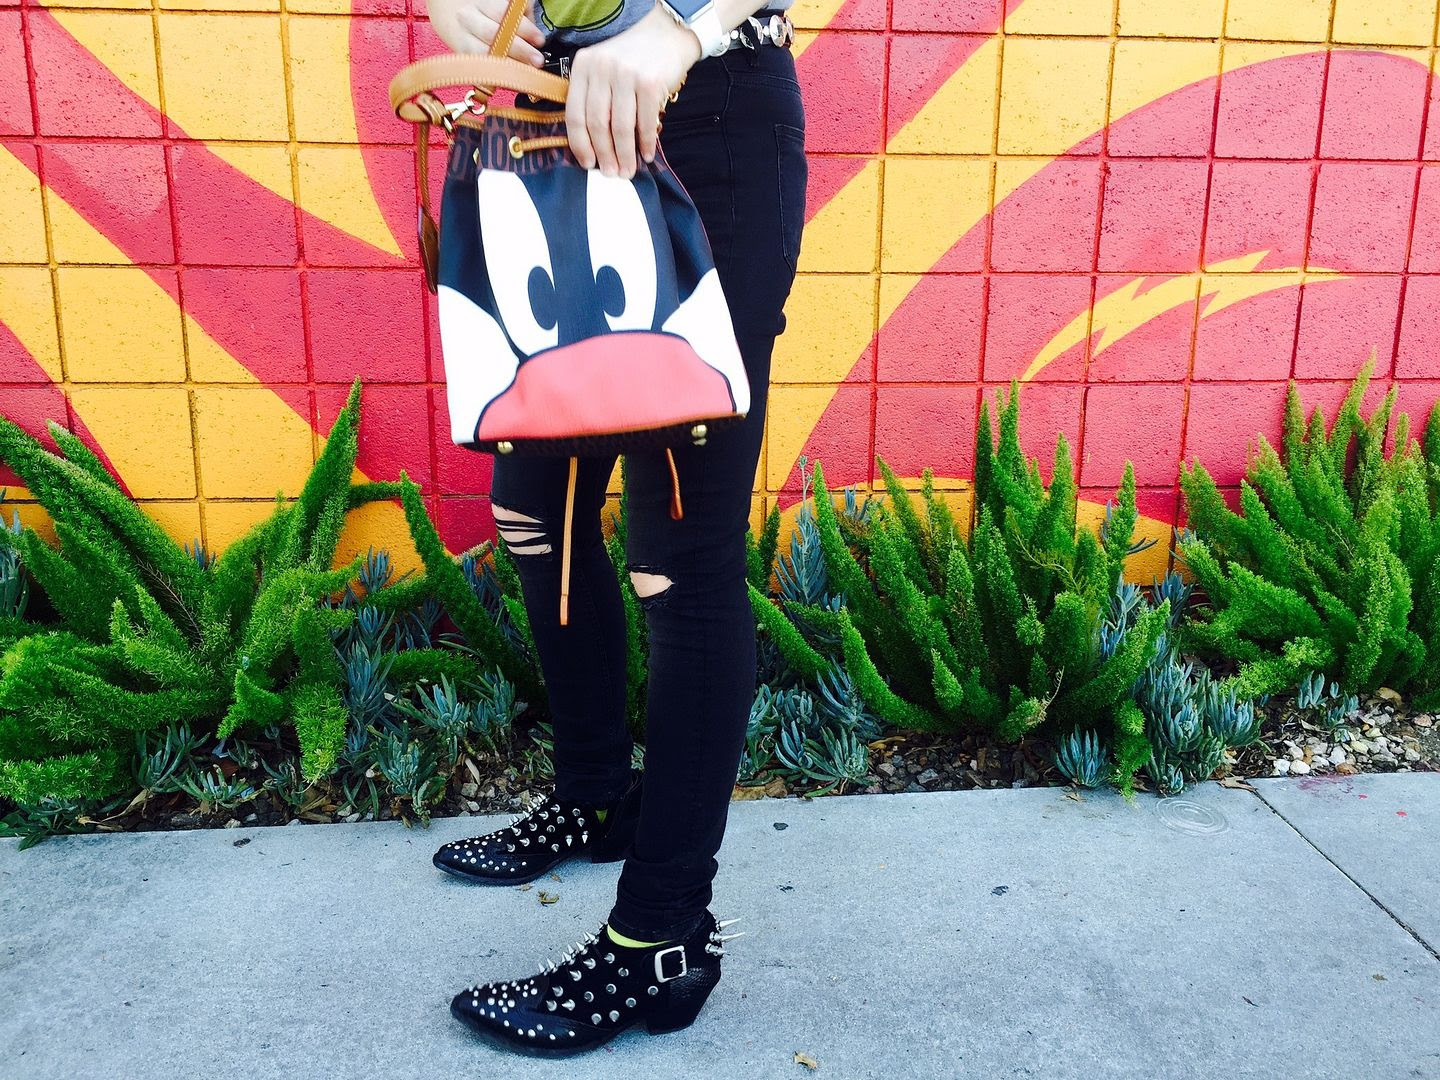 photo sylvesterthecat-moschino-bucketbag-shopsuperstreet-beckerman-girls_zpsmikhmcmr.jpg